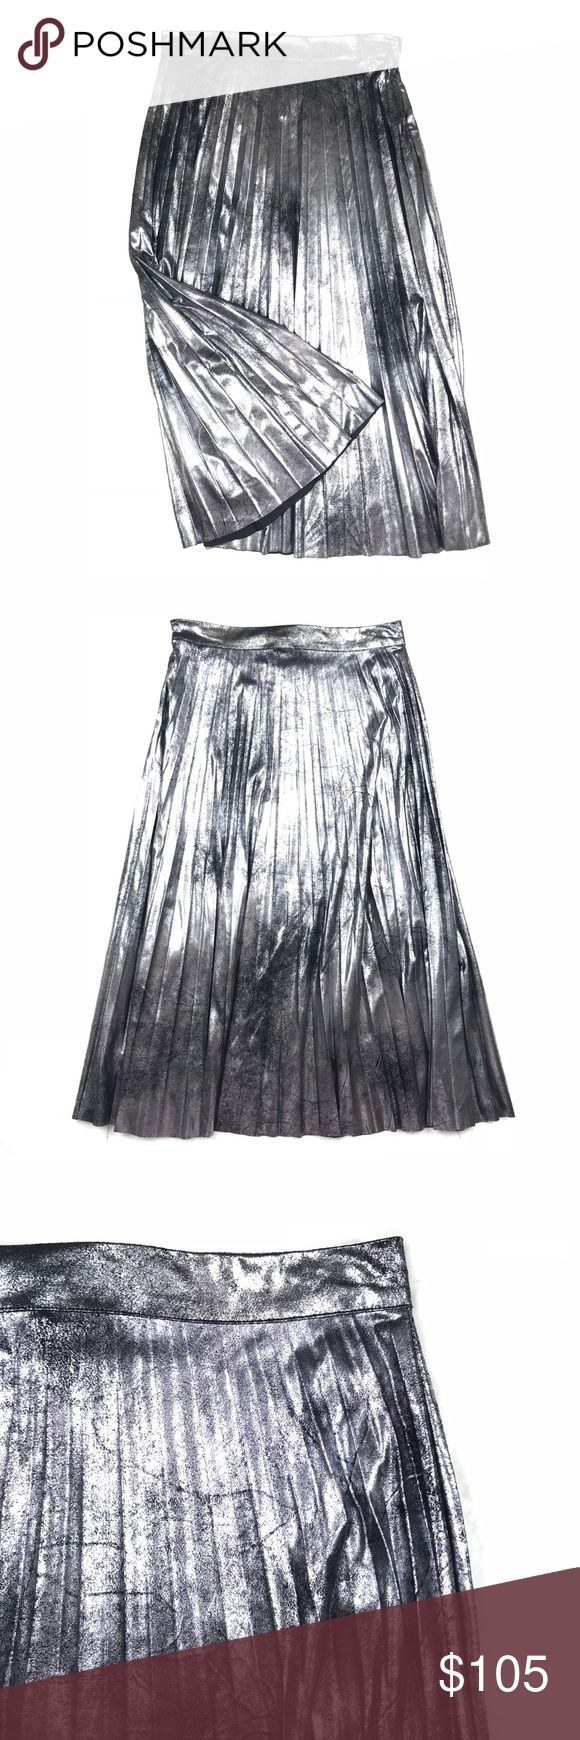 "Romeo & Juliet Metallic Pleated Midi Skirt Brand New! * Hidden side zip closure, metallic coated-effect * Pleated body, midi length * 100% Polyester * Hand wash cold, line dry  Measurements: - Waist: 28""  - Length: 30"" Romeo & Juliet Couture Skirts Midi"